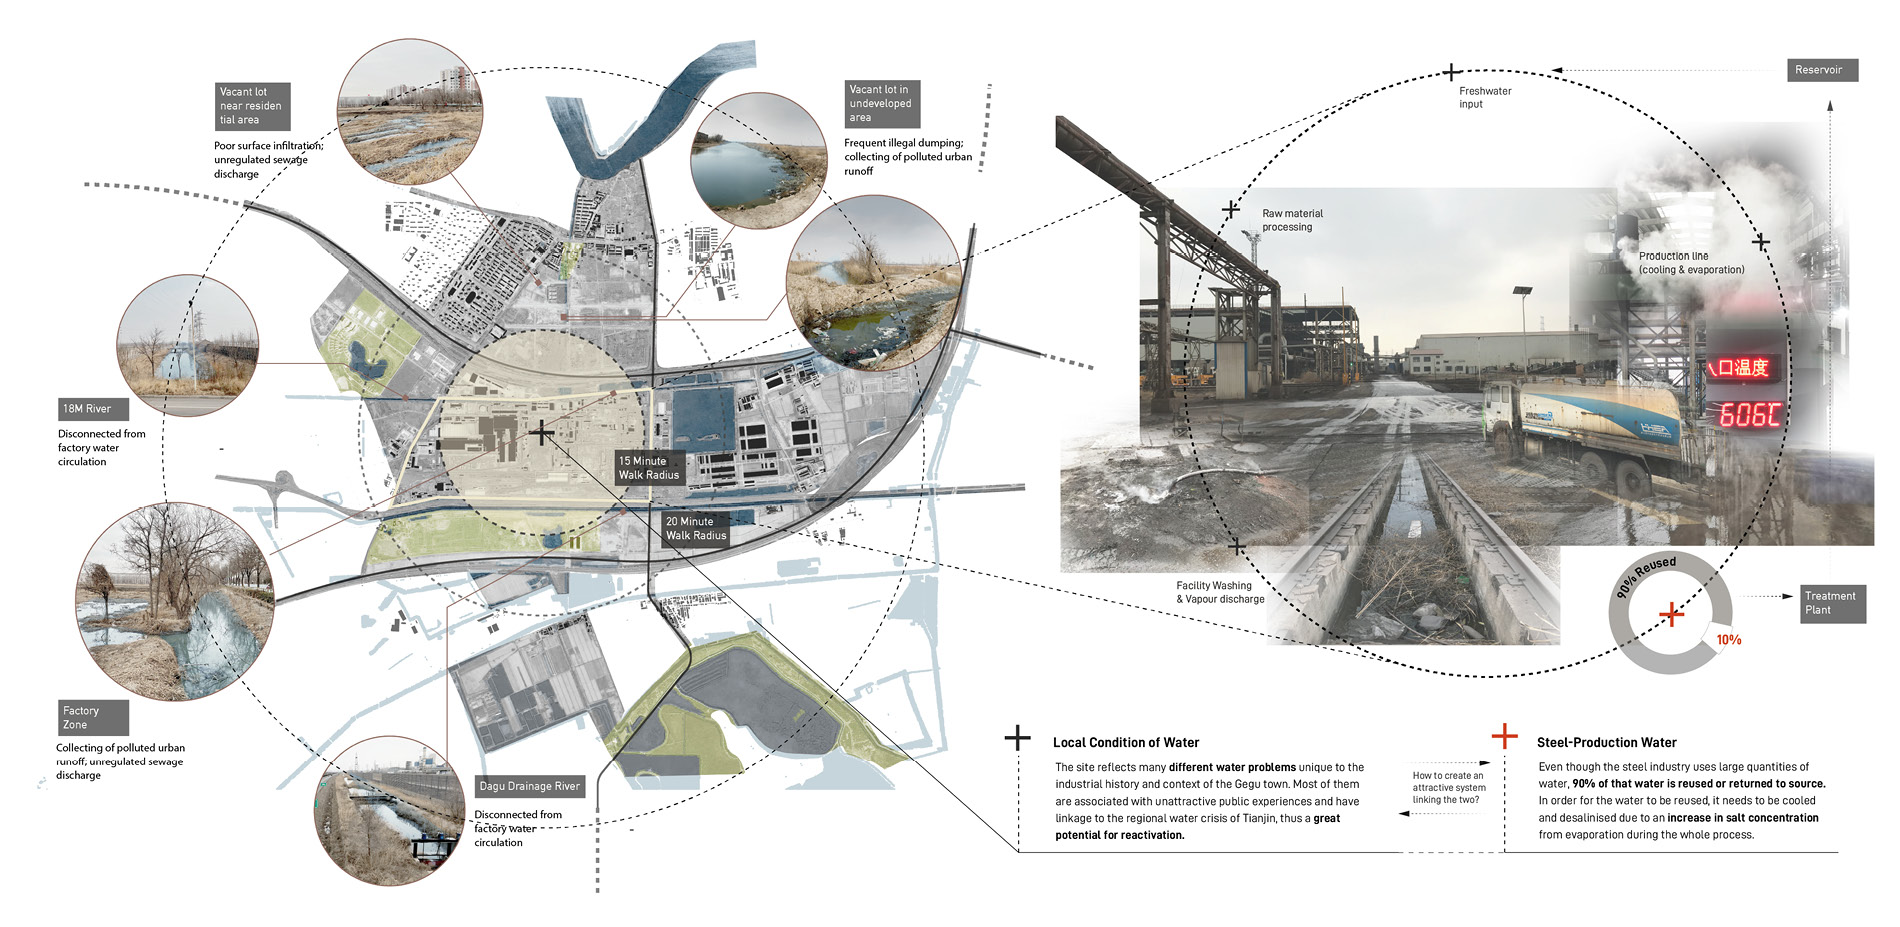 Preliminary Research: Contextual Water vs. Steel-making Water